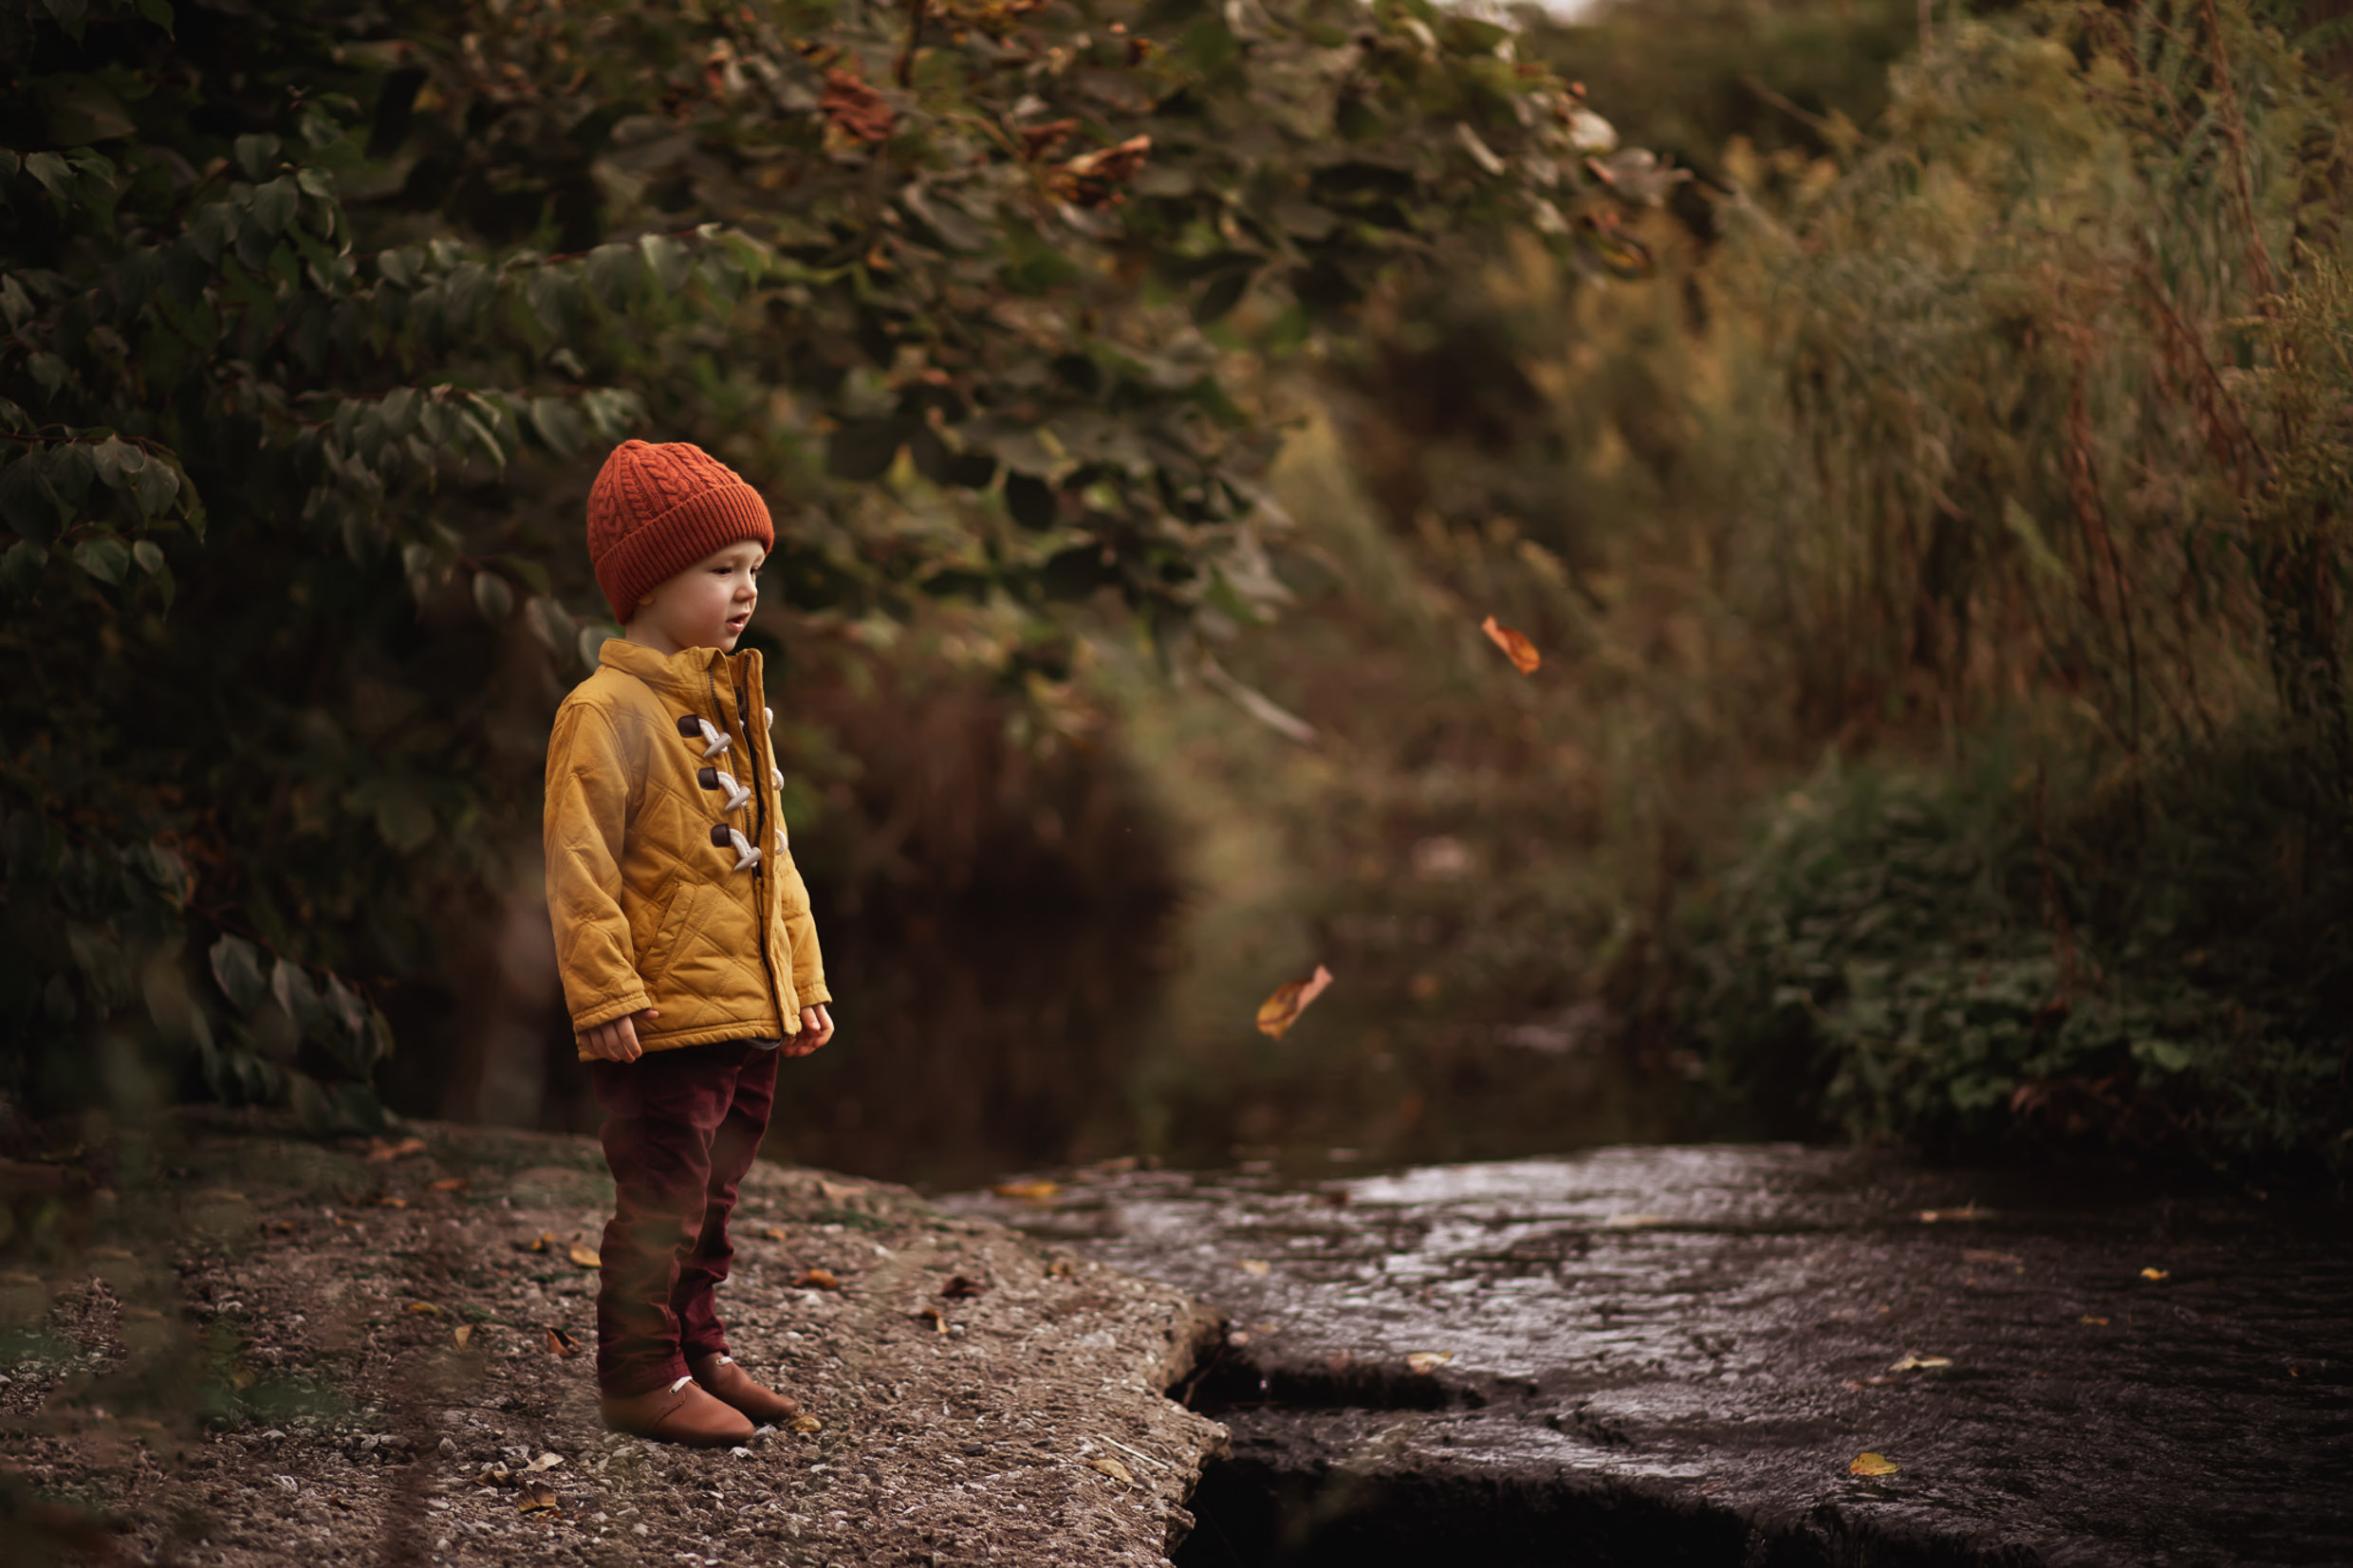 A child is standing in the forest at looking at leaves falling down from trees.